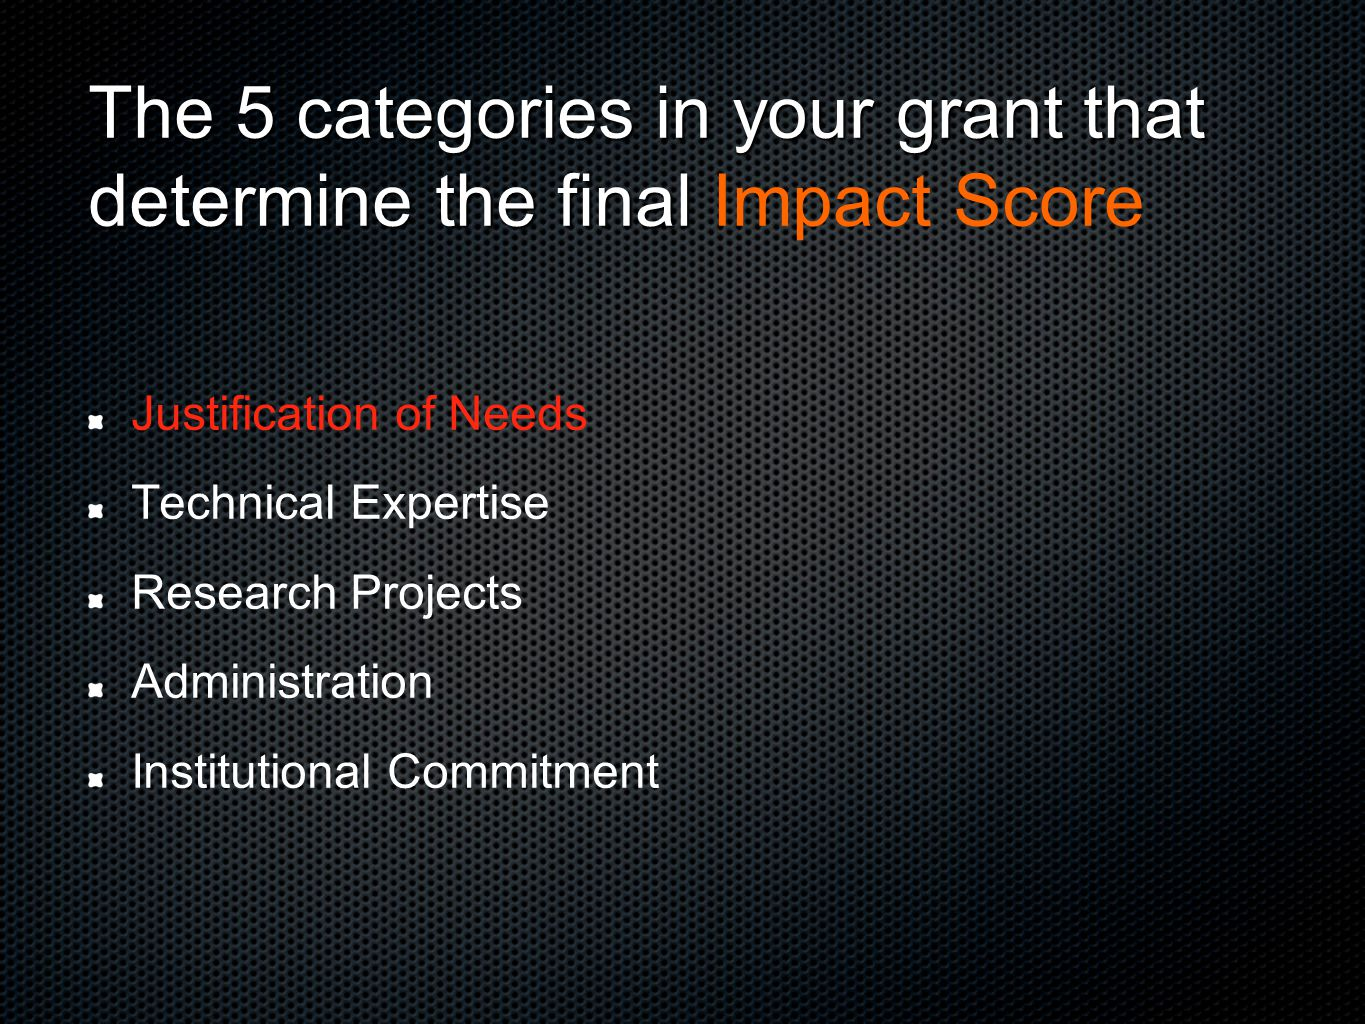 Justification of Needs Technical Expertise Research Projects Administration Institutional Commitment The 5 categories in your grant that determine the final The 5 categories in your grant that determine the final Impact Score